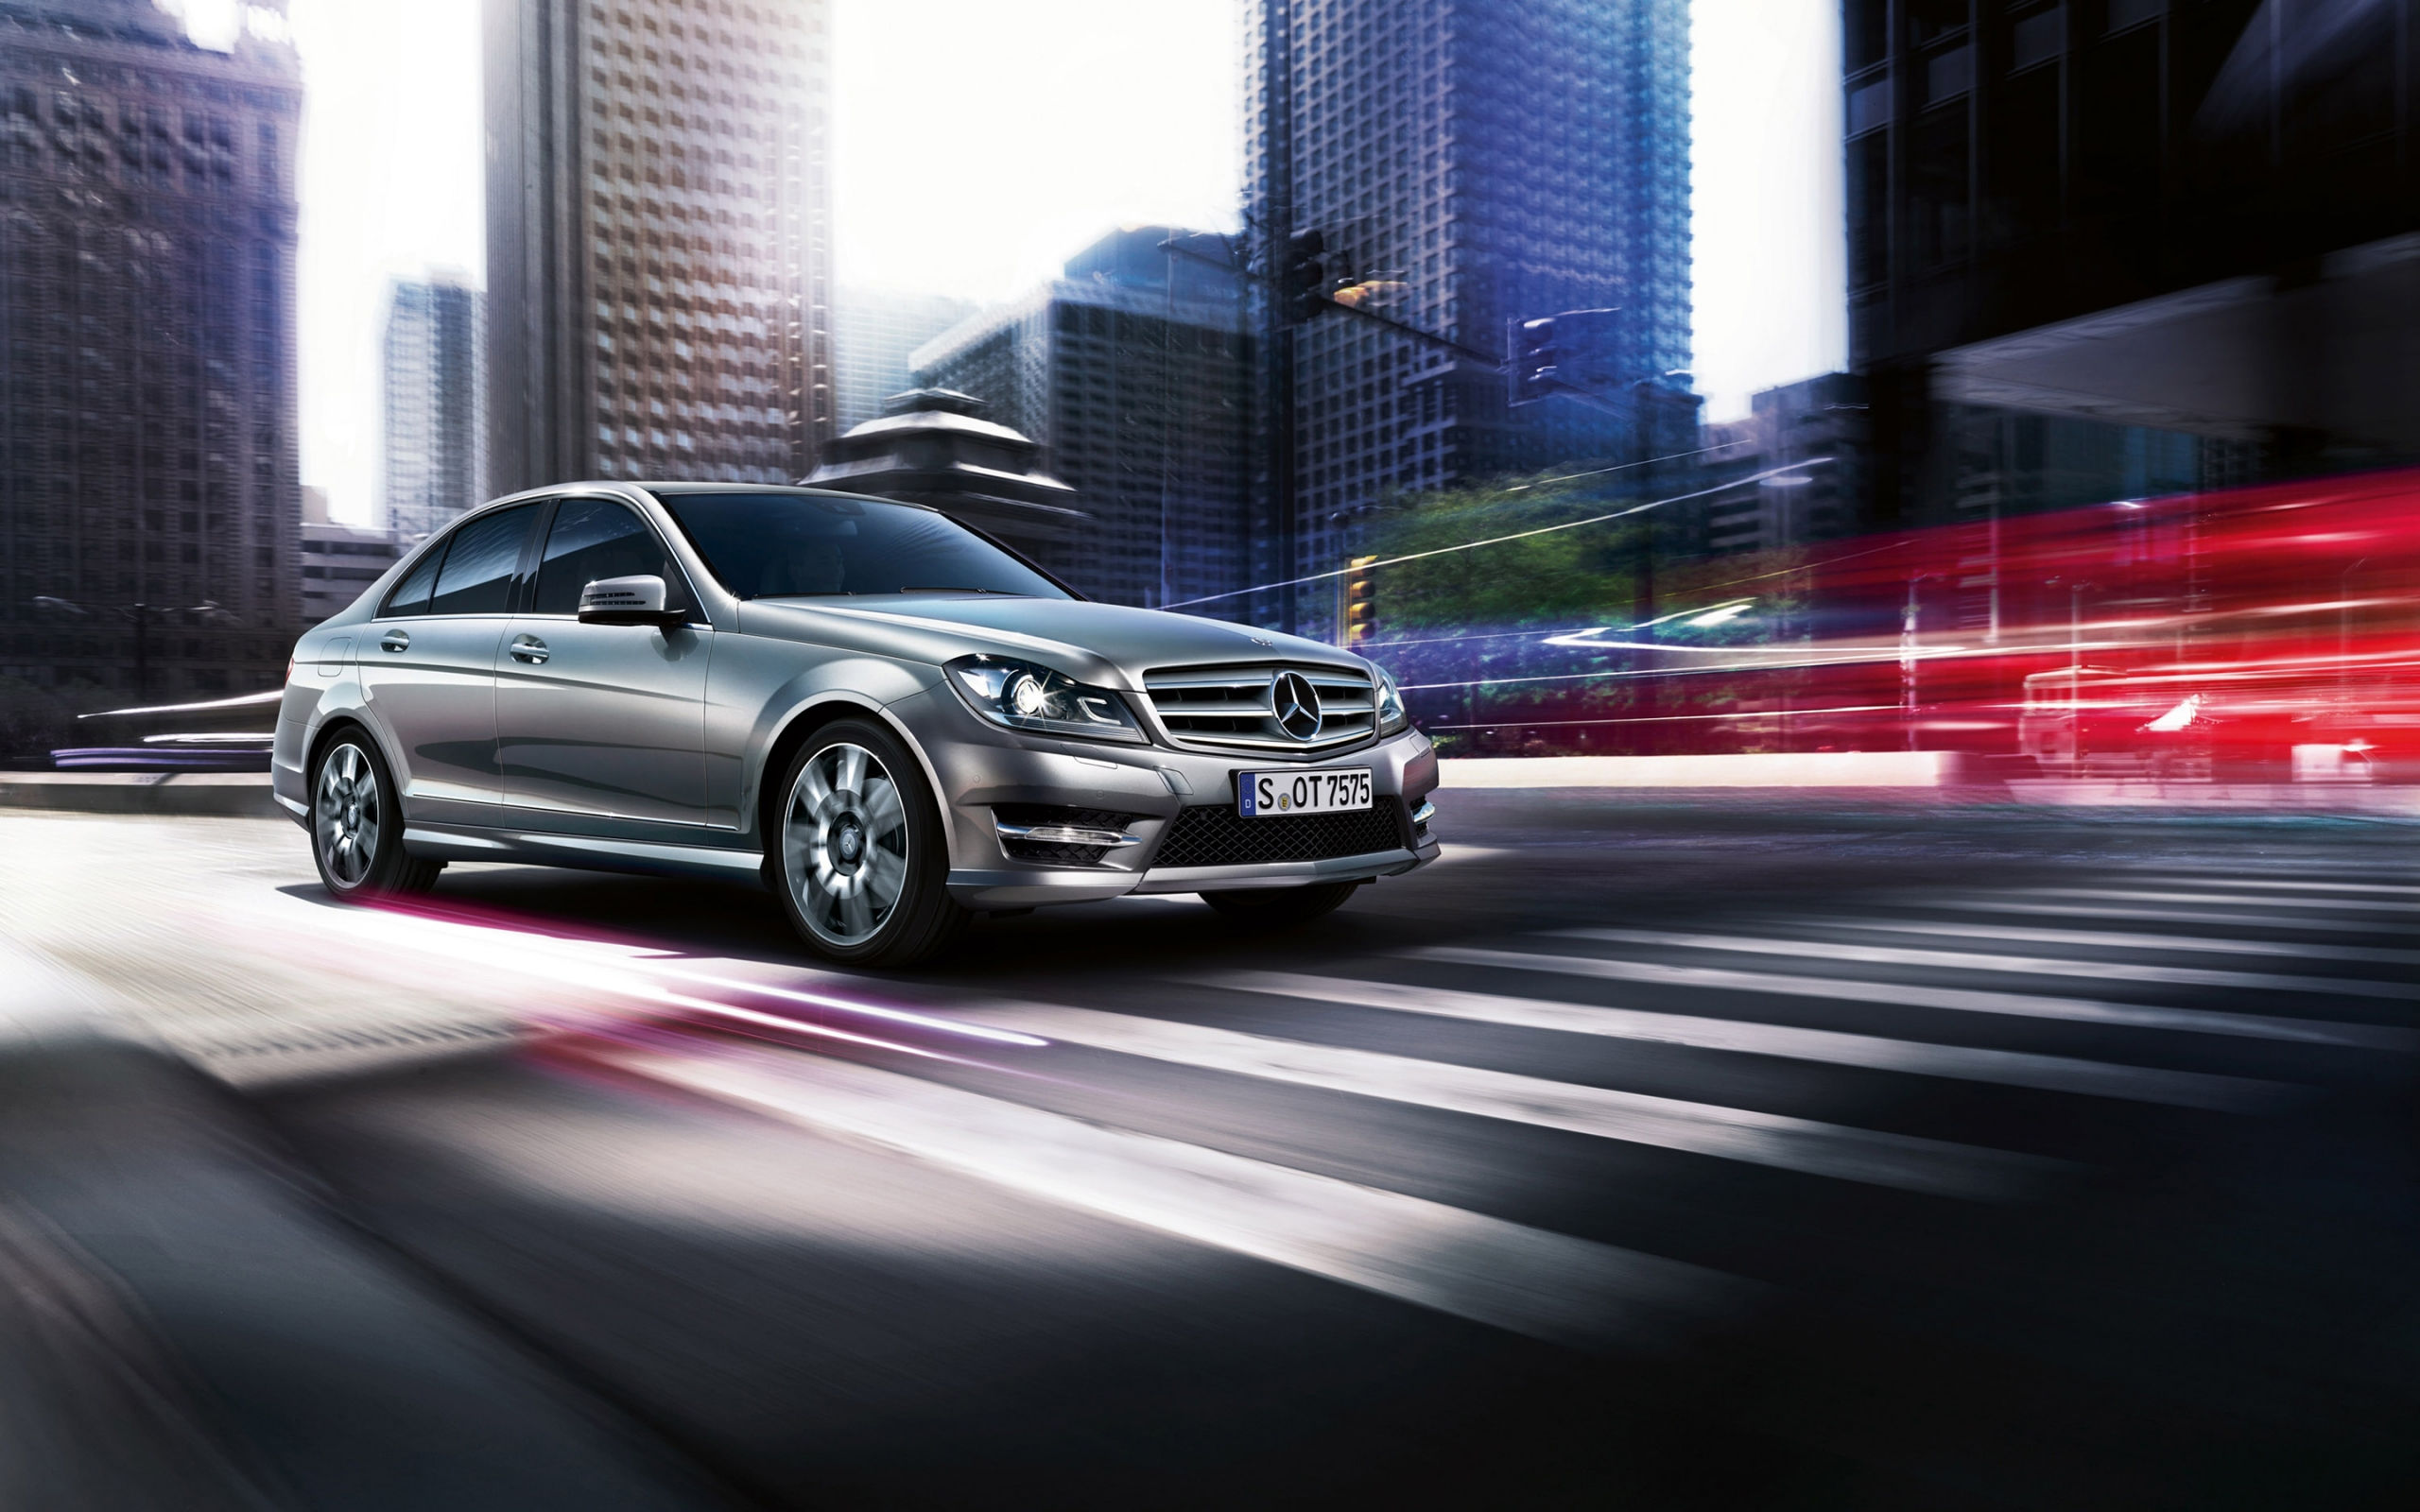 Mercedes-Benz Full HD Wallpaper And Background Image